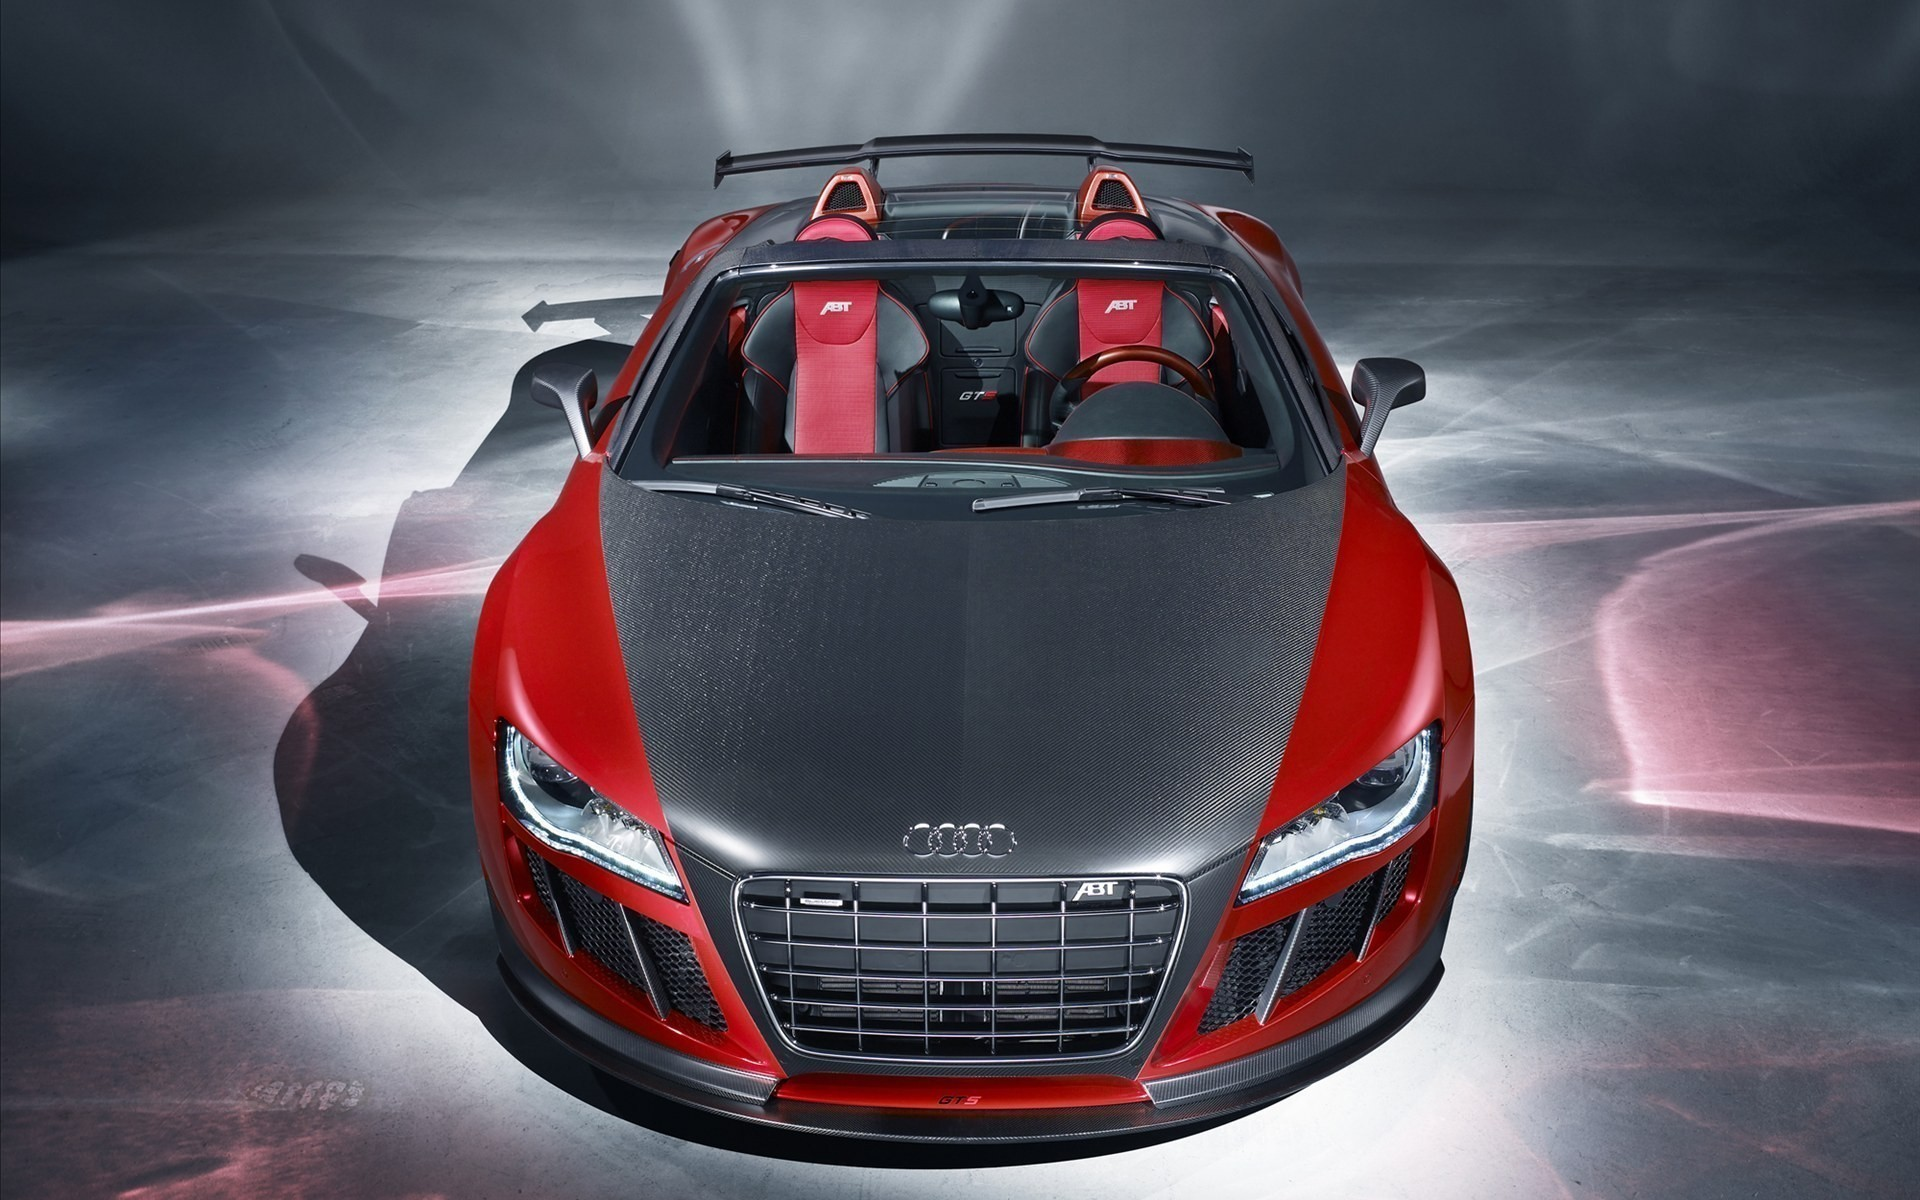 Abt audi r8 gt spyder german cars wallpaper 1920x1200